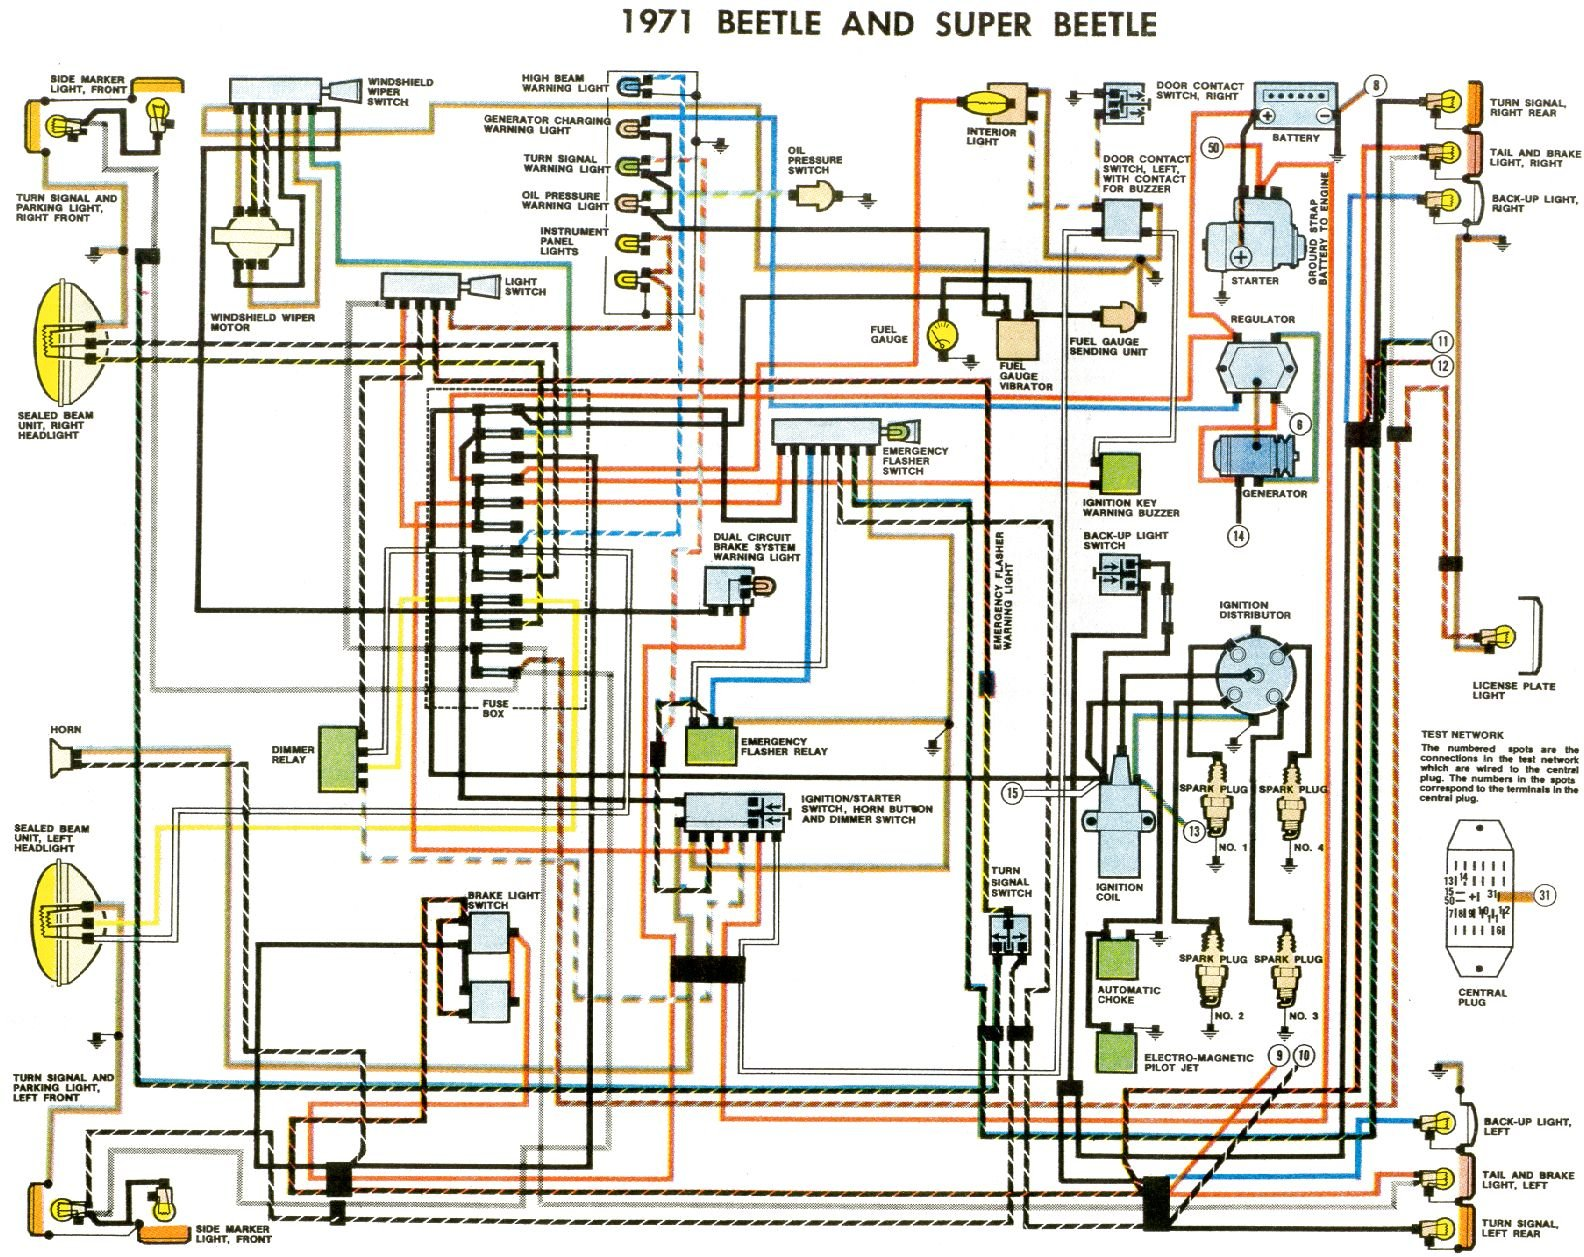 Turbo Beetle Fuse Box Diagram 2000 List Of Schematic Circuit 2010 Mazda New M 3 80 Camaro Auto Electrical Wiring Rh Psu Edu Co Fr Sanjaydutt Me